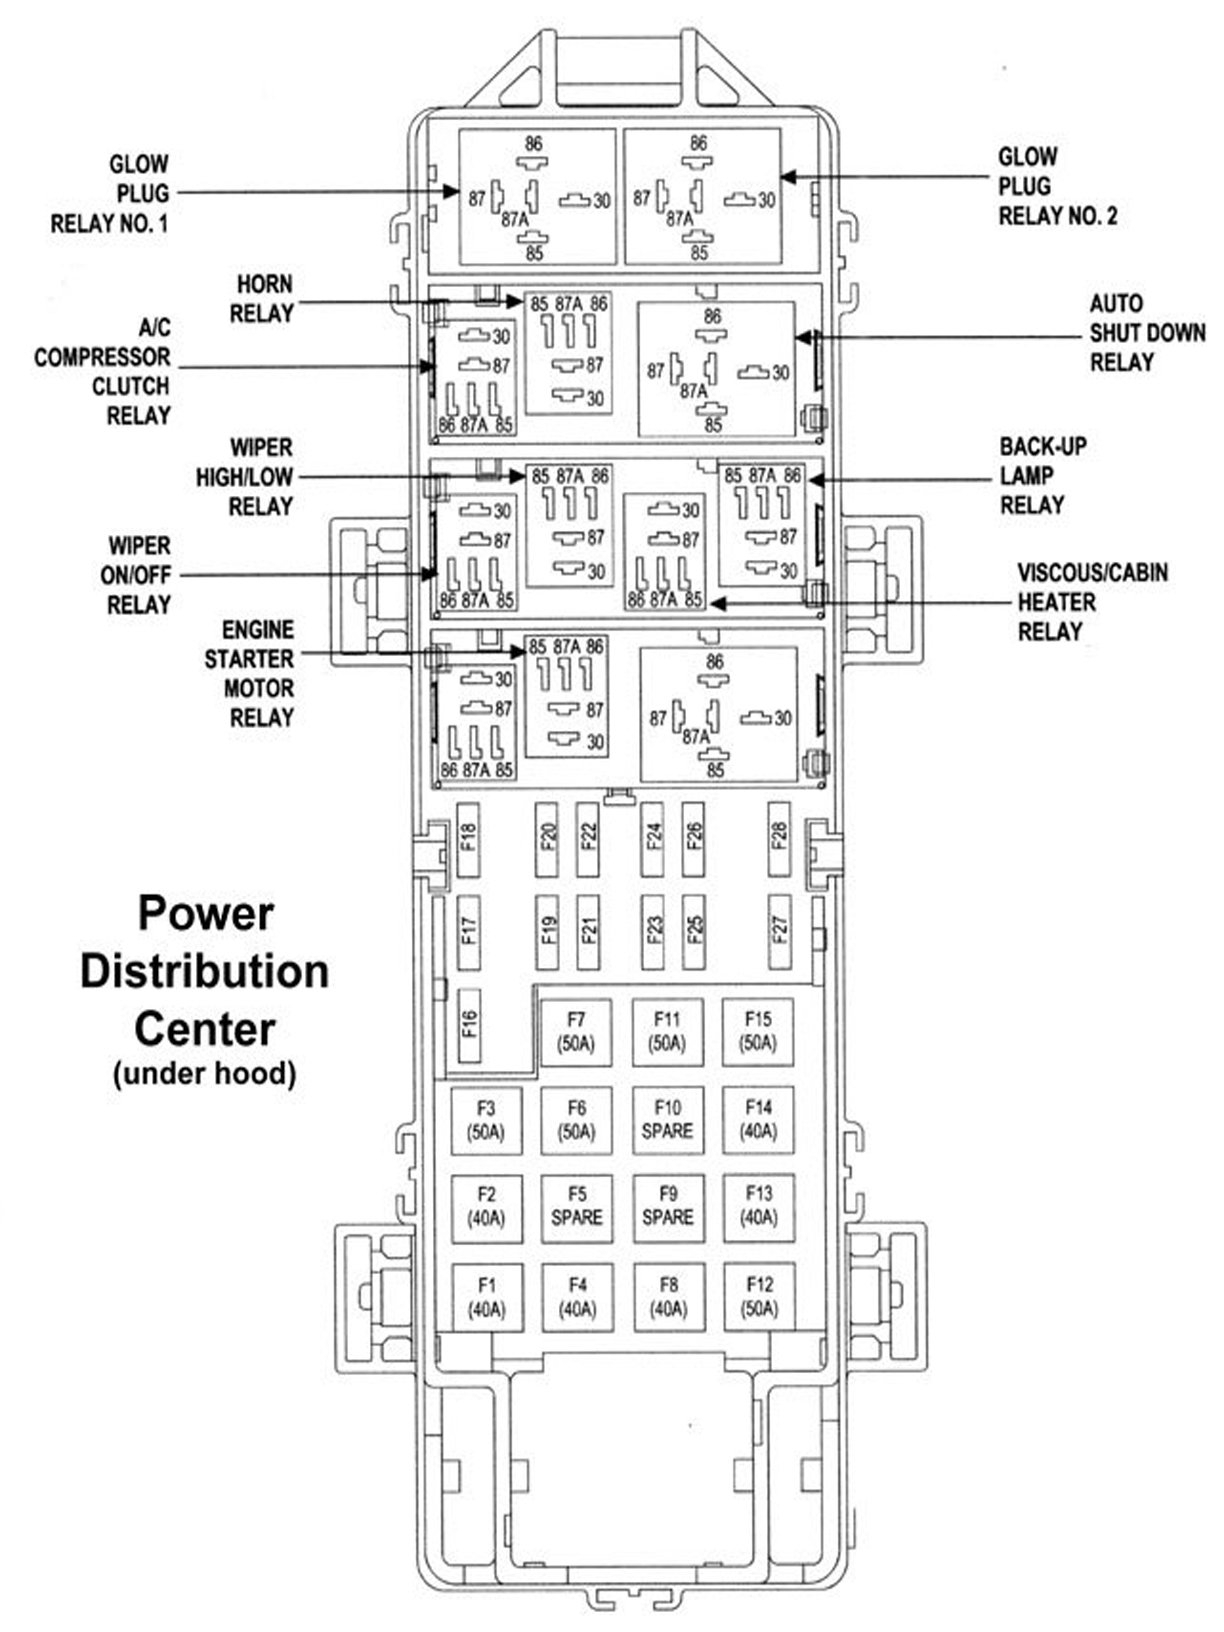 jeep grand cherokee wj 1999 to 2004 fuse box diagram cherokeeforum intended for 1998 jeep grand cherokee parts diagram jeep grand cherokee wj 1999 to 2004 fuse box diagram 2004 Jeep Fuse Box Diagram at couponss.co